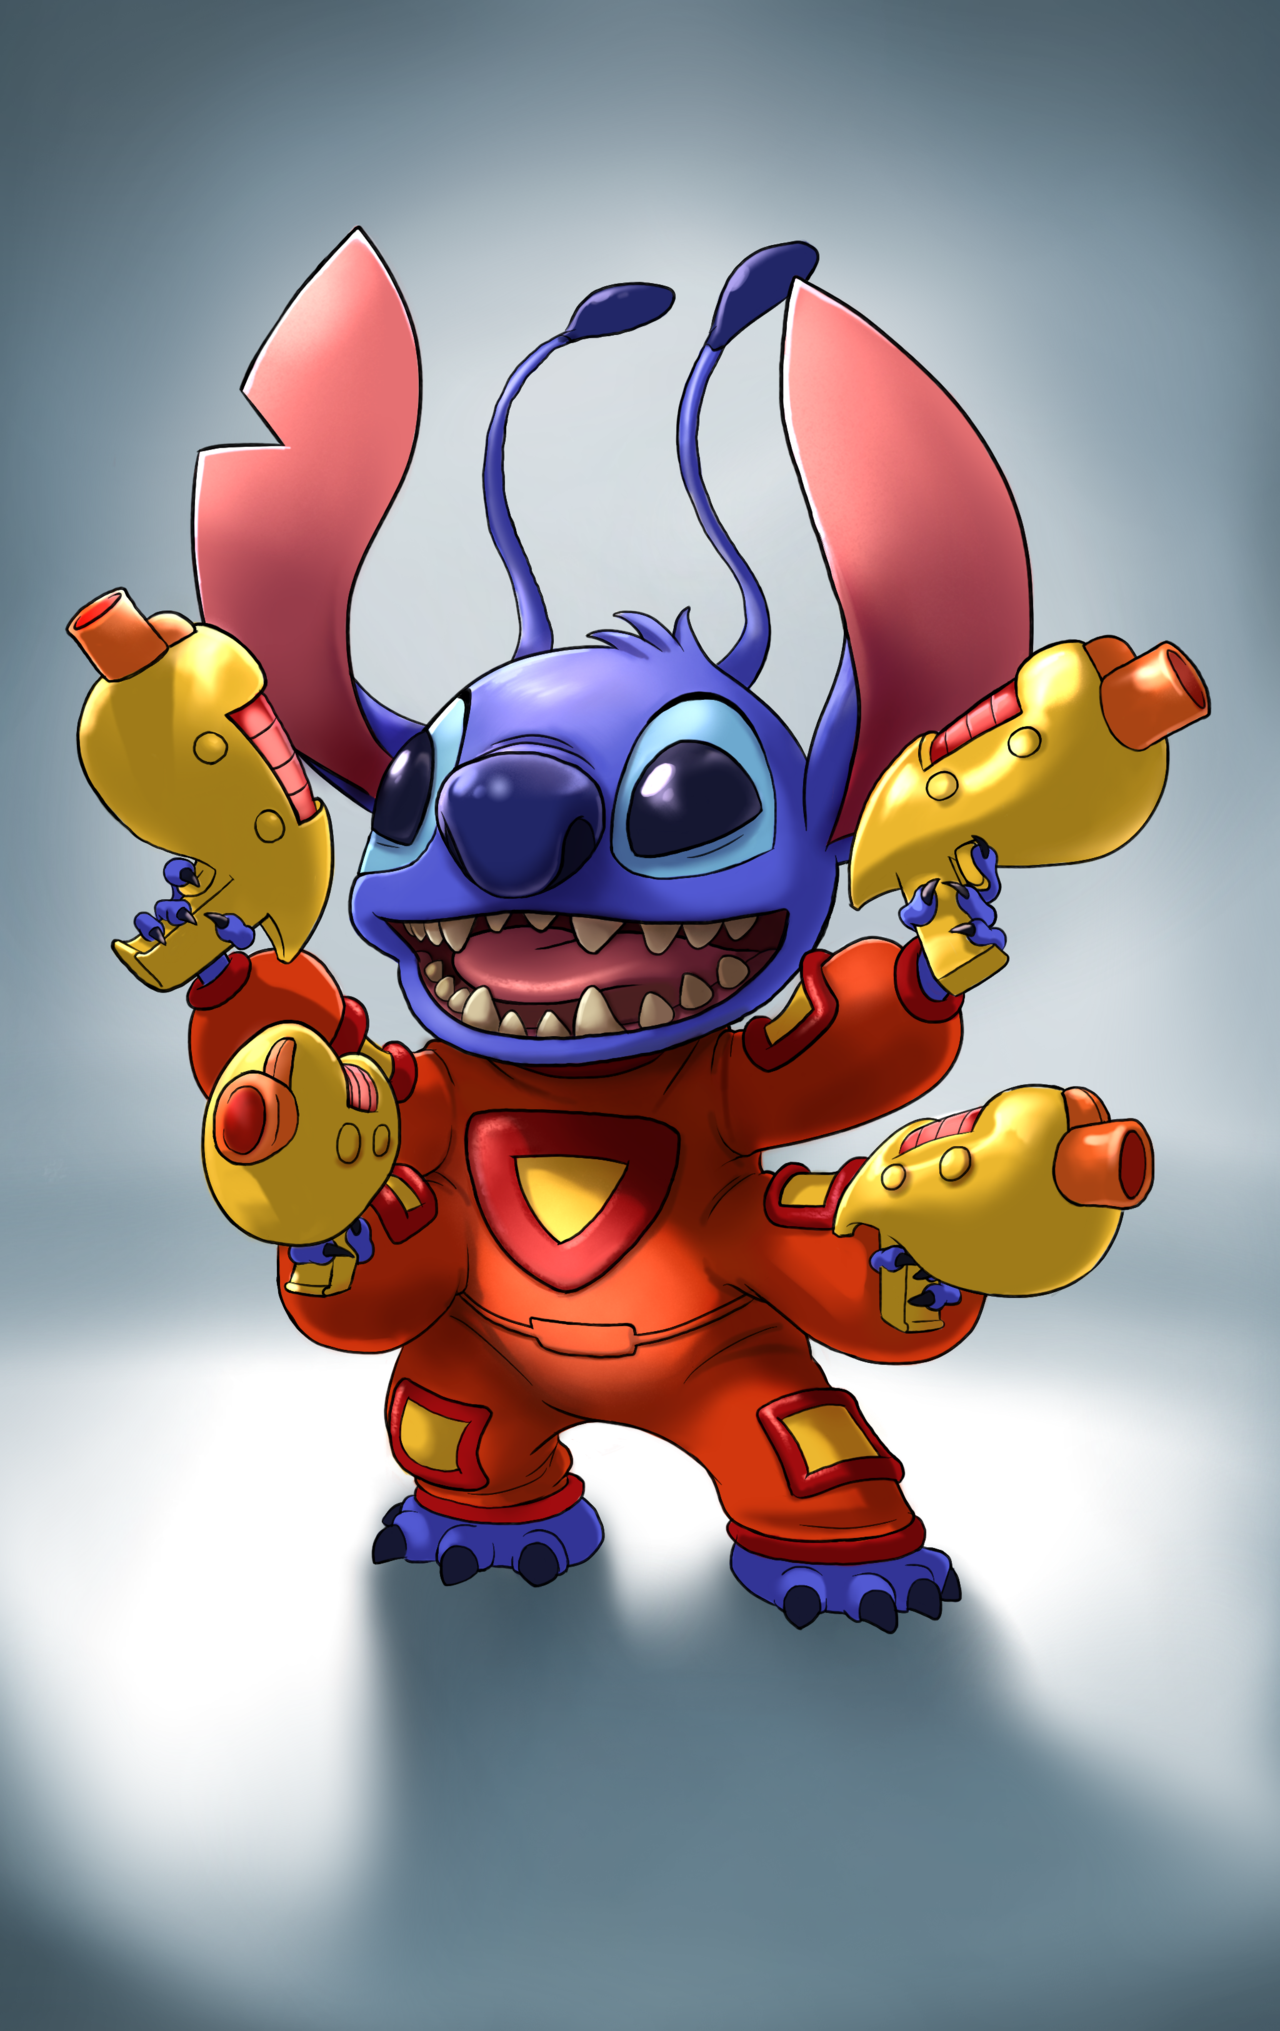 e926 2014 4_arms 4_fingers 4_toes alien antennae blue_claws blue_eyes blue_fur blue_nose claws clothed clothing digital_media_(artwork) dipstick_antennae disney experiment_(species) full-length_portrait fur head_tuft hi_res holding_object holding_weapon lilo_and_stitch multi_arm multi_limb multi_wielding notched_ear open_mouth open_smile otherworldmedia plasma_rifle portrait simple_background smile solo spacesuit standing stitch toe_claws toes toony tuft weapon